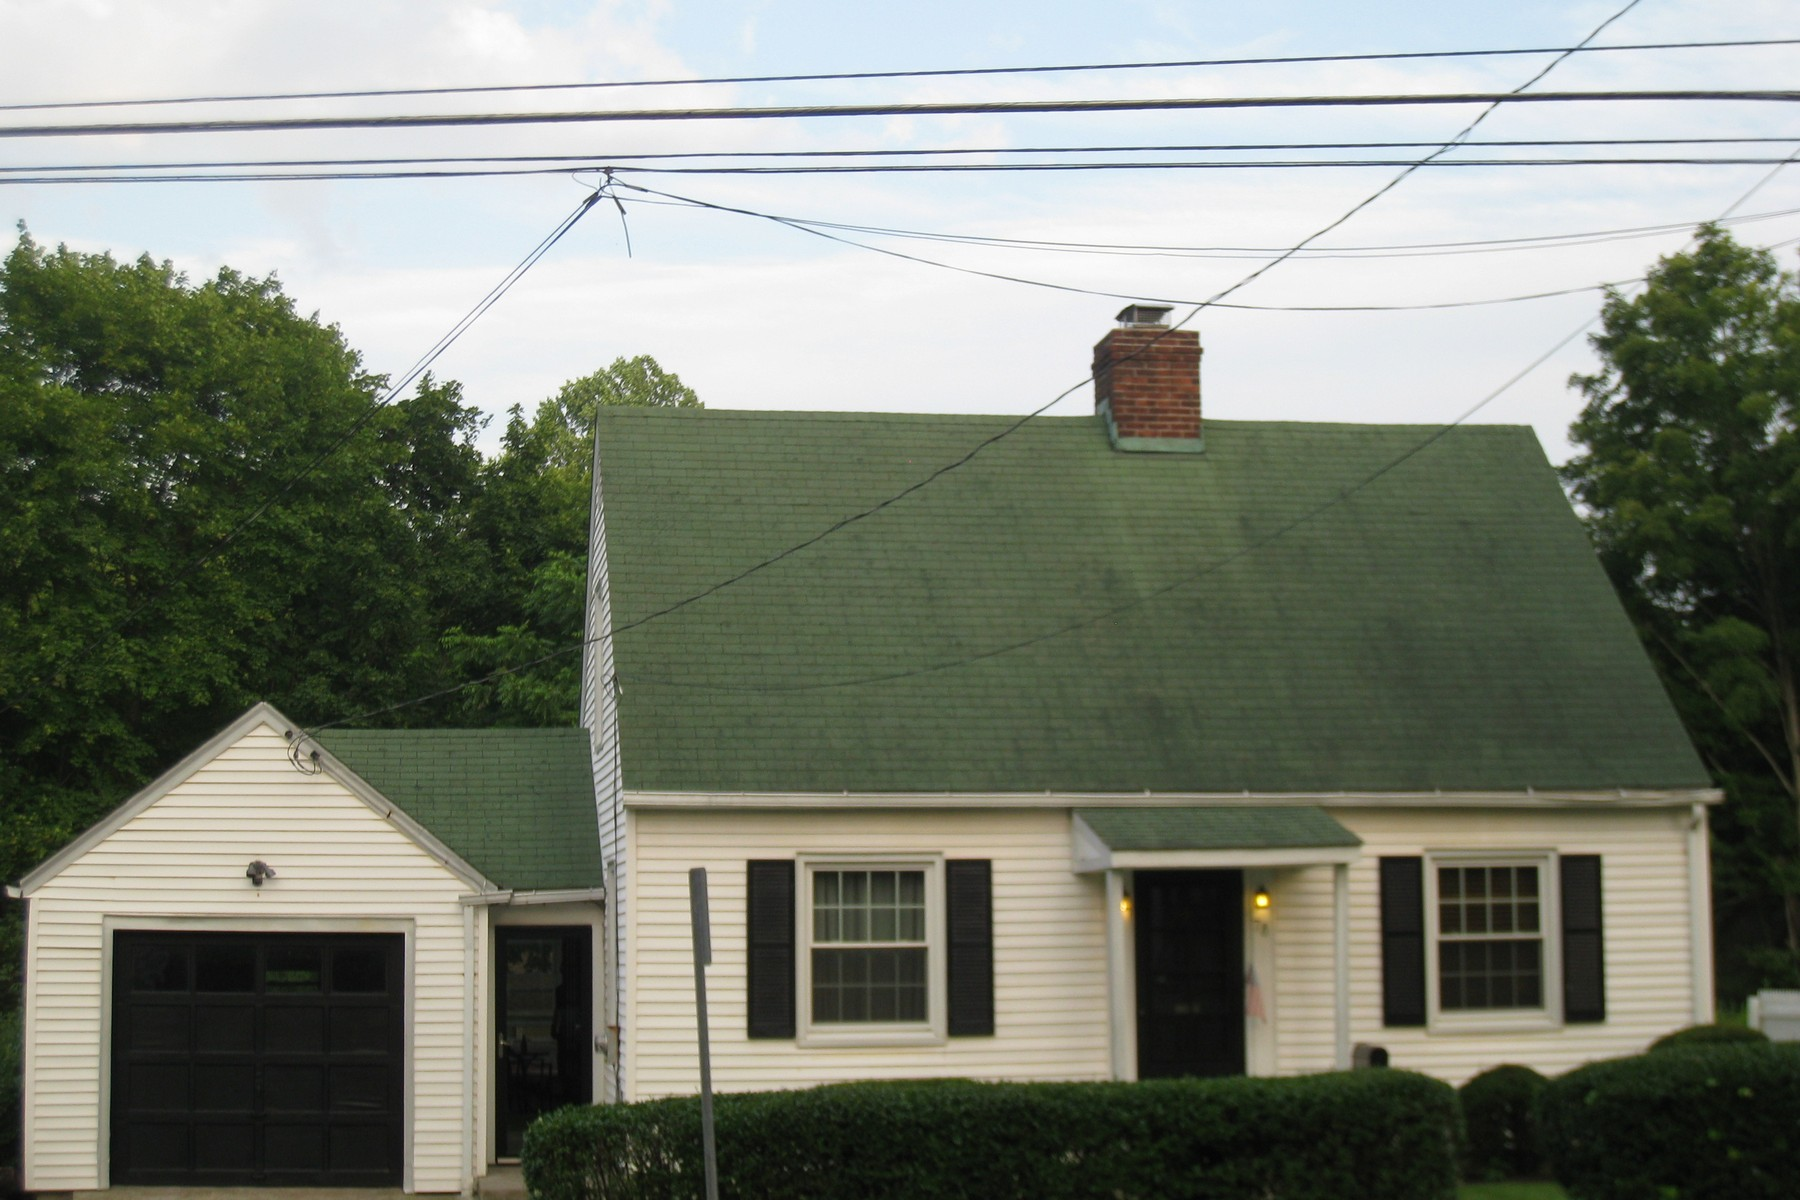 Single Family Home for Sale at Wonderful Condo Alternative! 78 West Wooster Street Danbury, Connecticut, 06810 United States